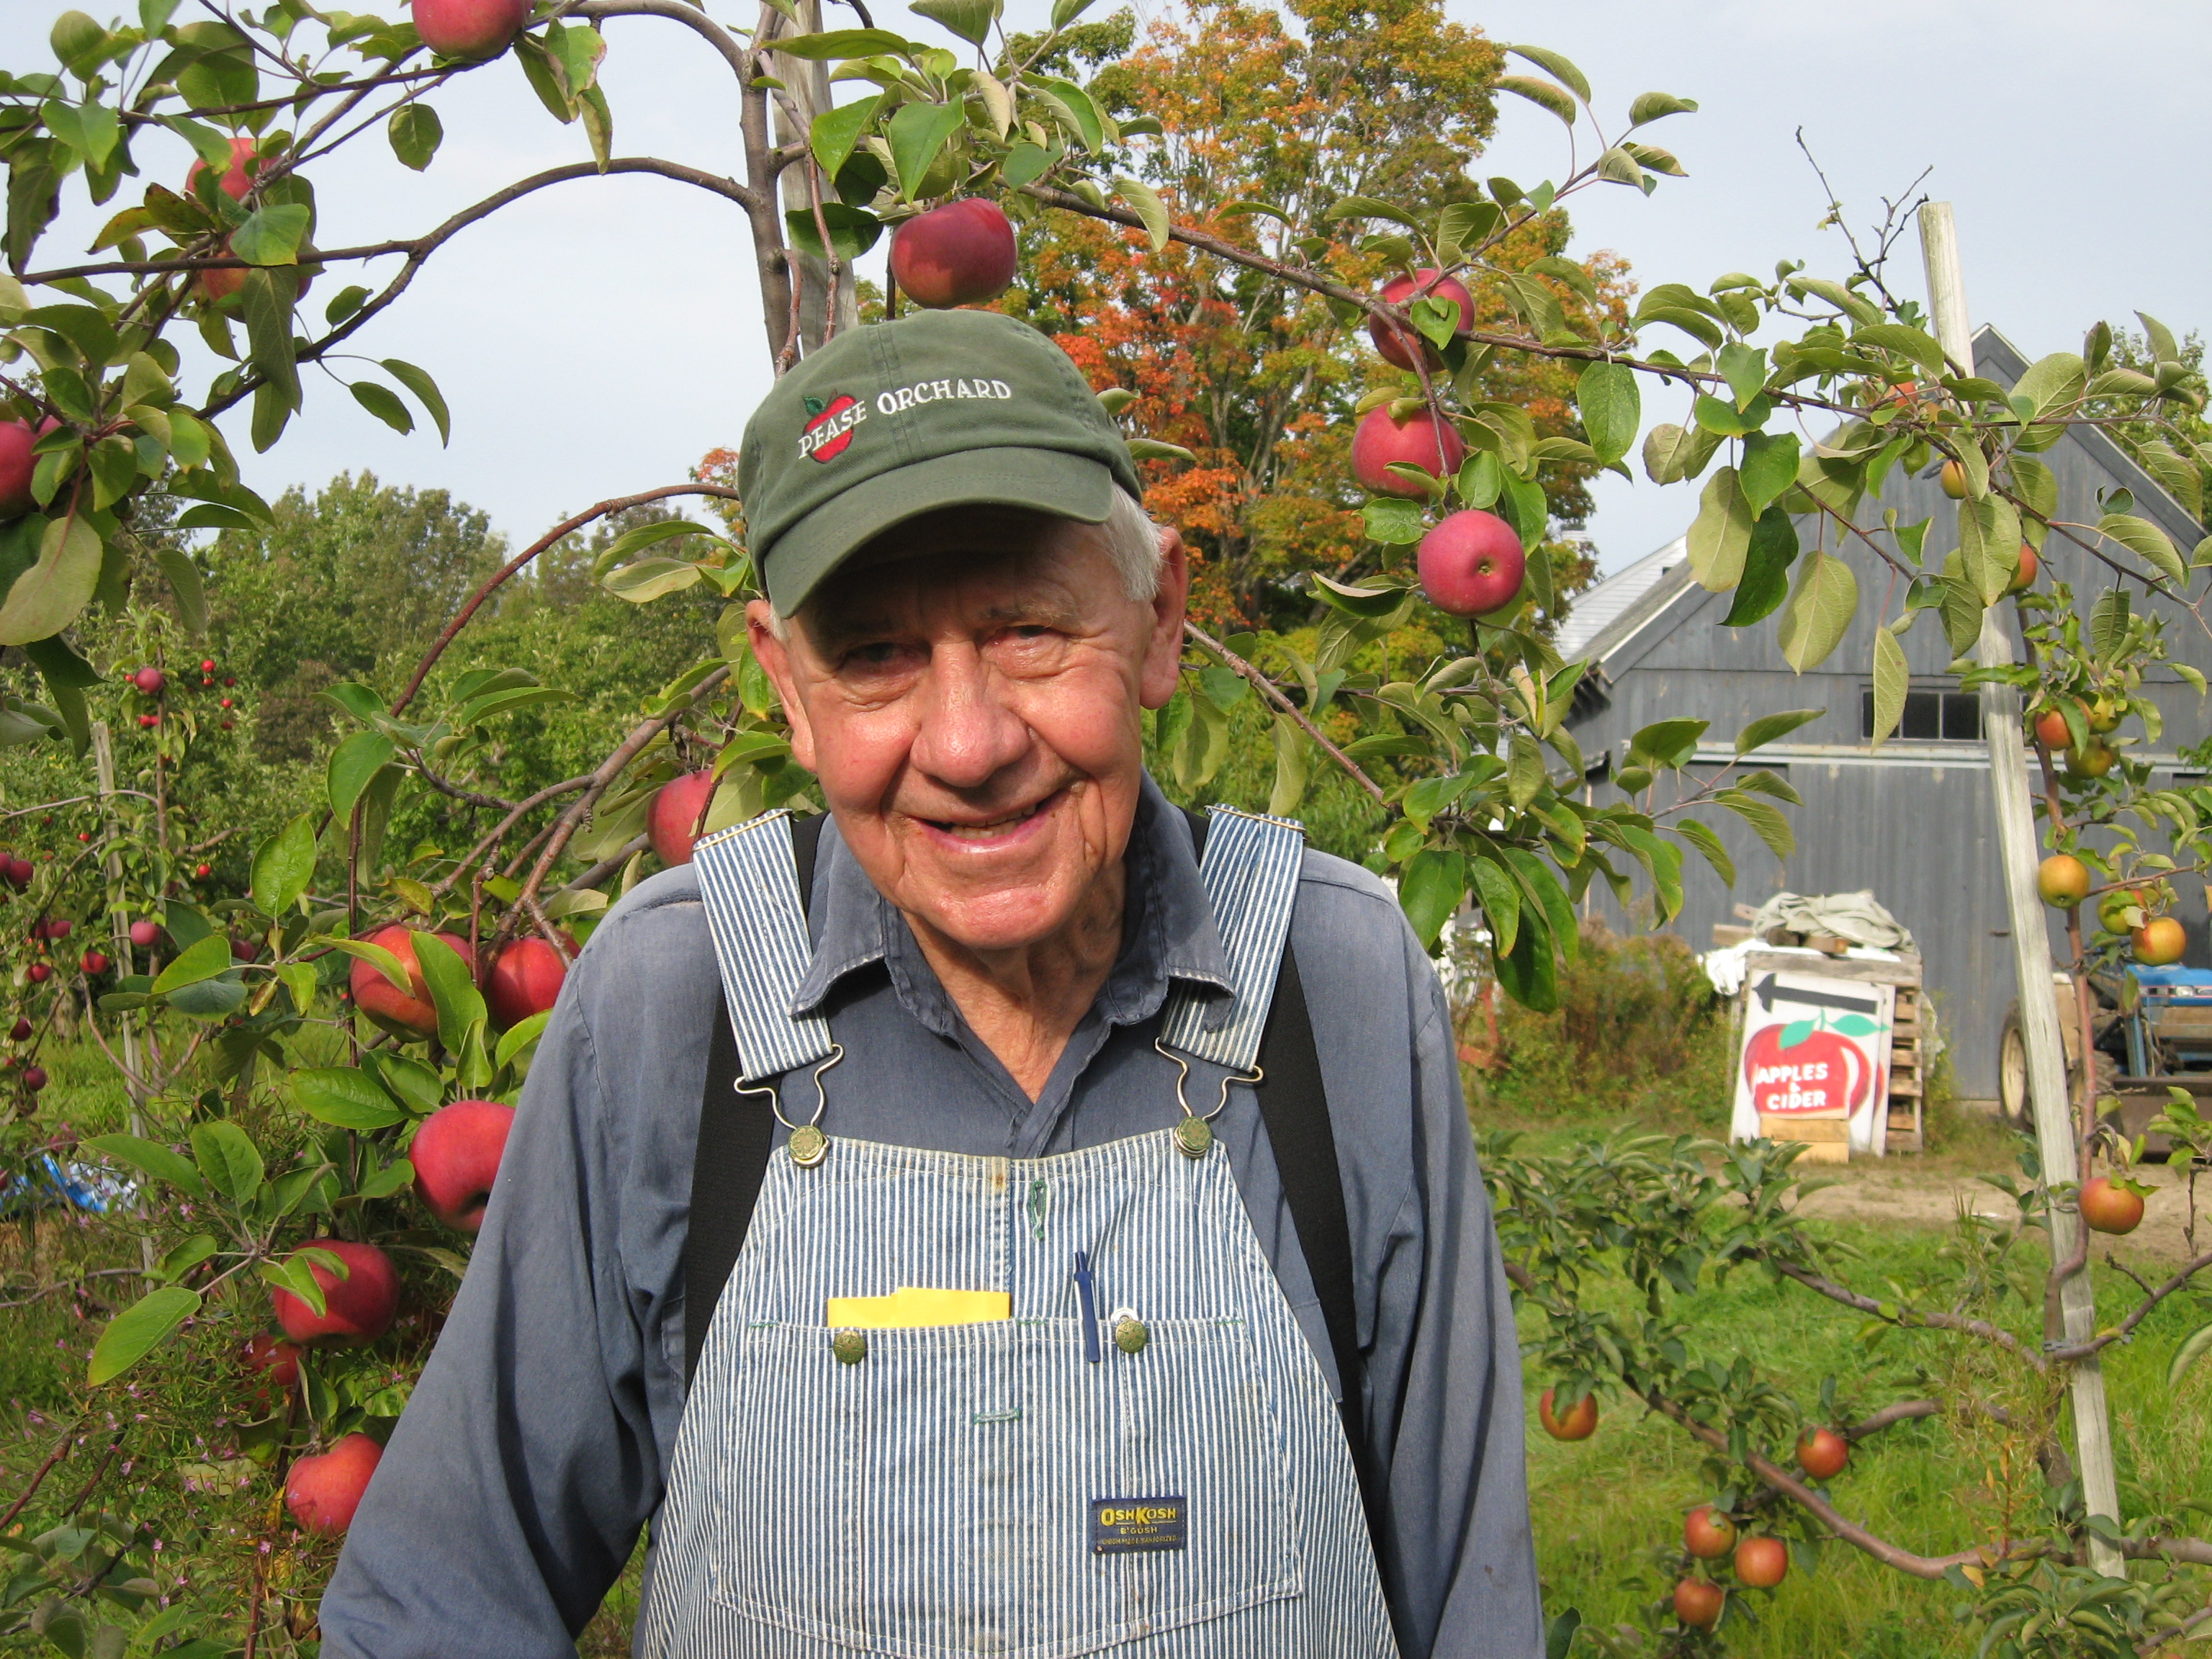 Robert Pease of Pease Orchards, Templeton, MA (Photo: Tim Skoog, WBUR)